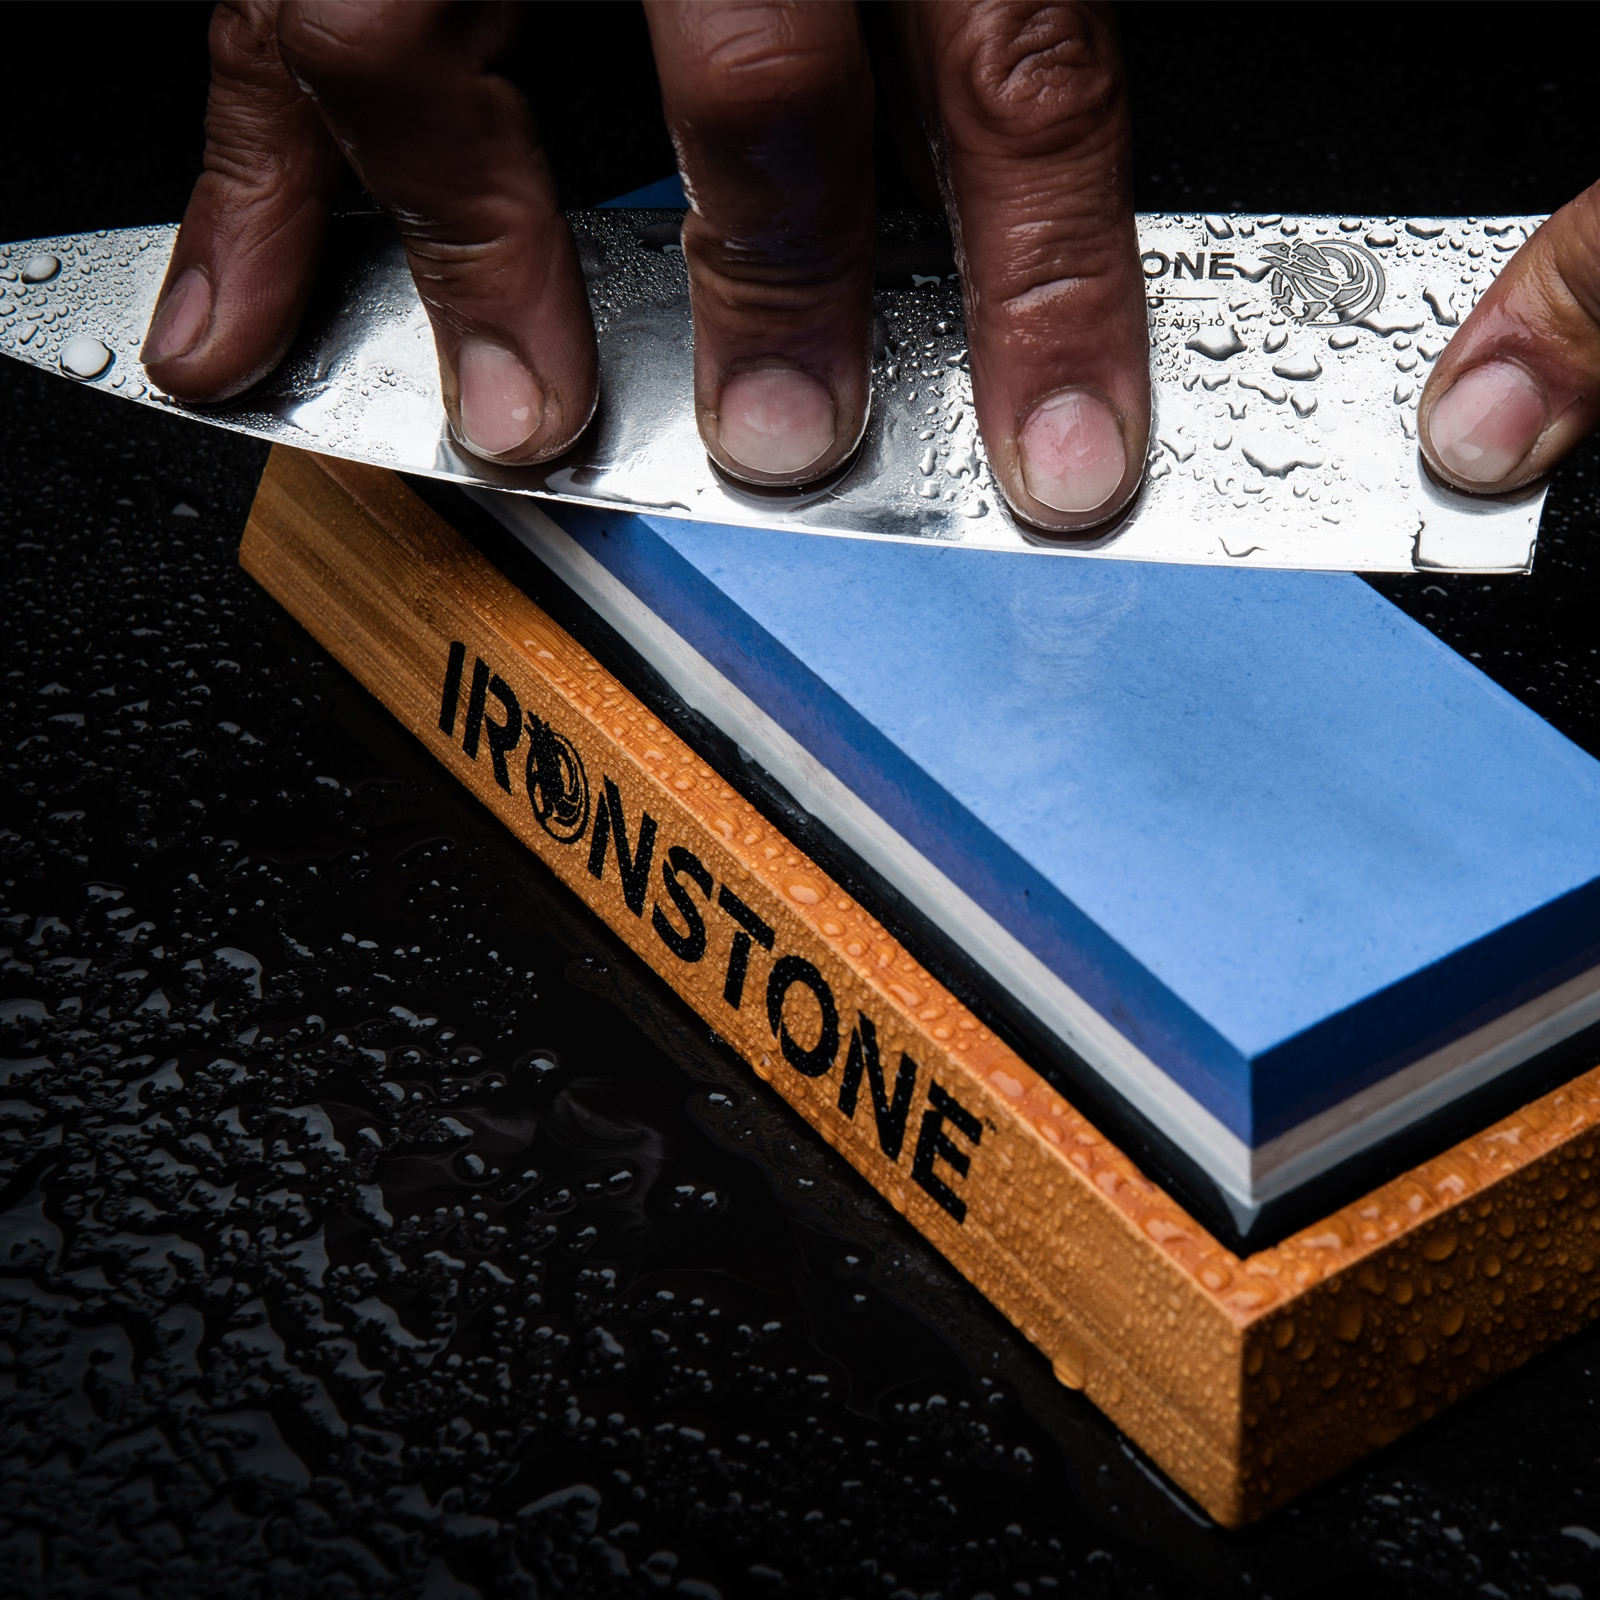 ironstone-Sharpening-Stone